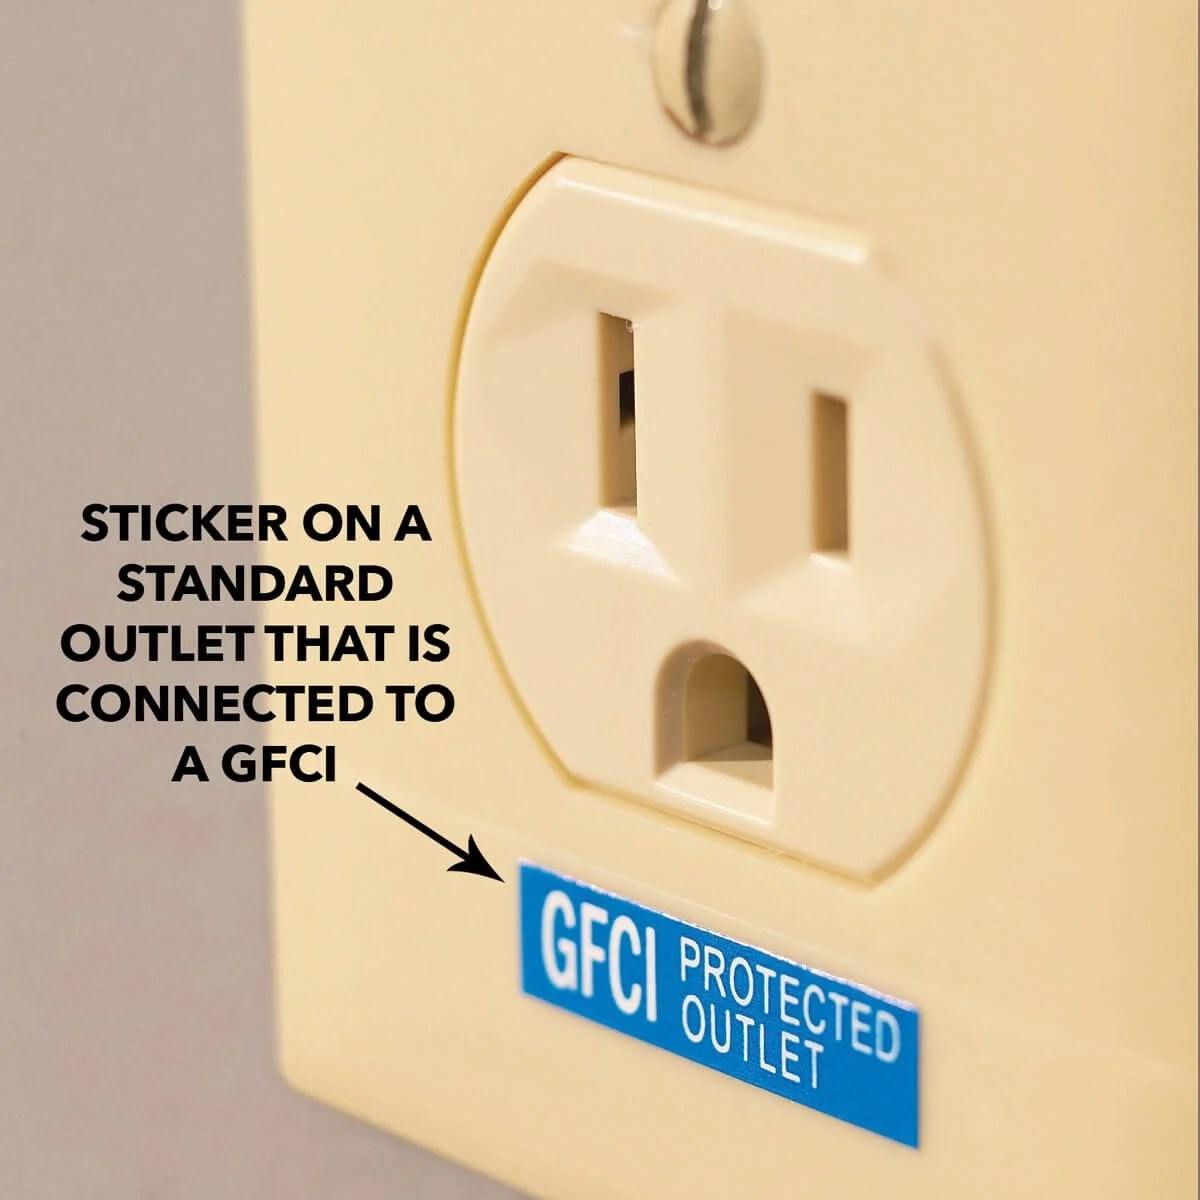 Bathroom Electrical Outlet Troubleshooting Dead Outlets And What To Do When Gfci Wont Reset